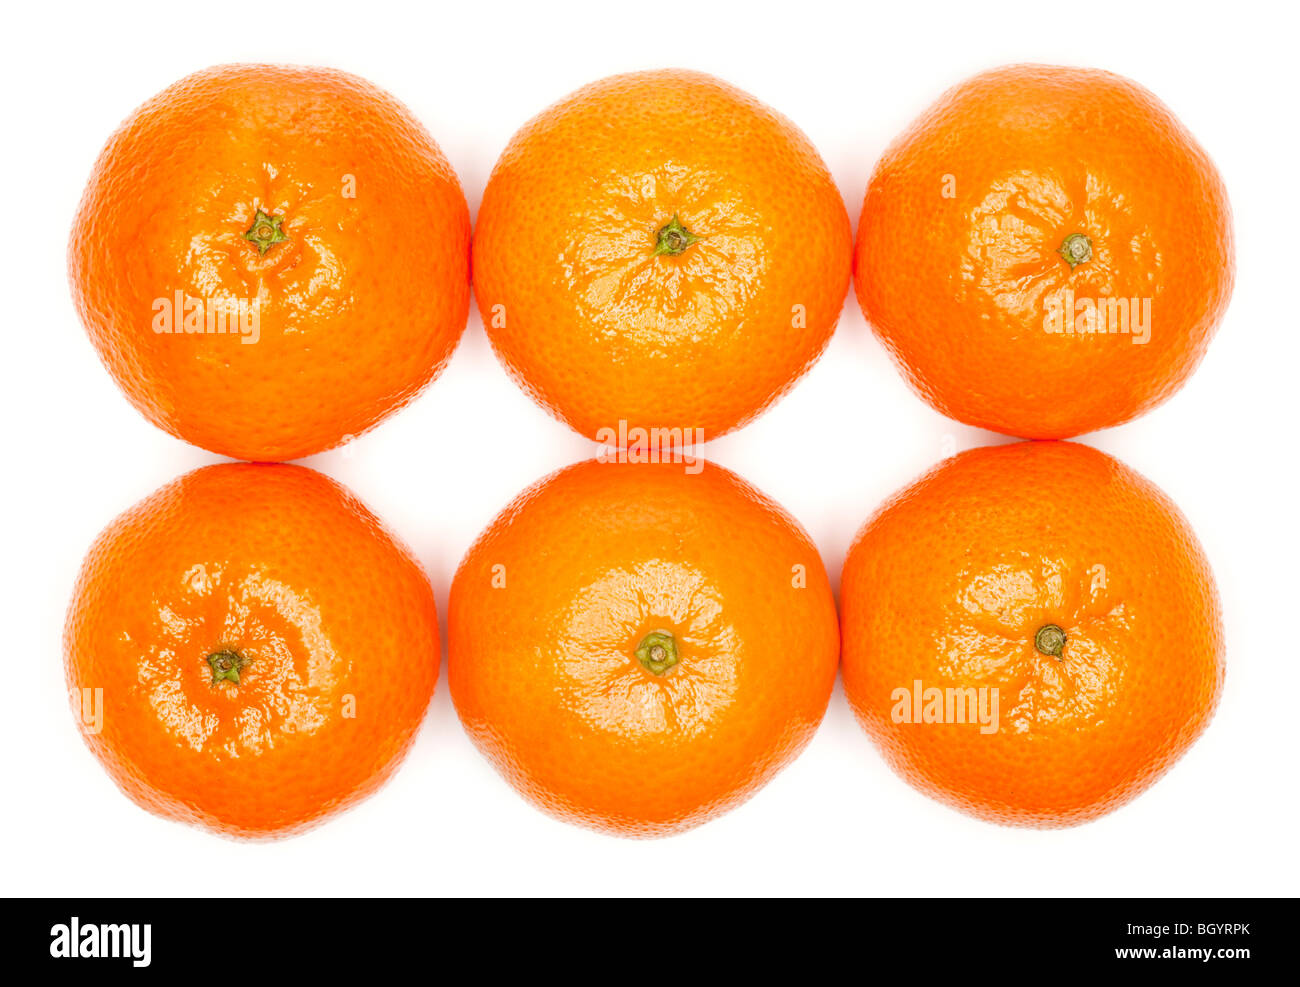 Six Clementines on white - Stock Image